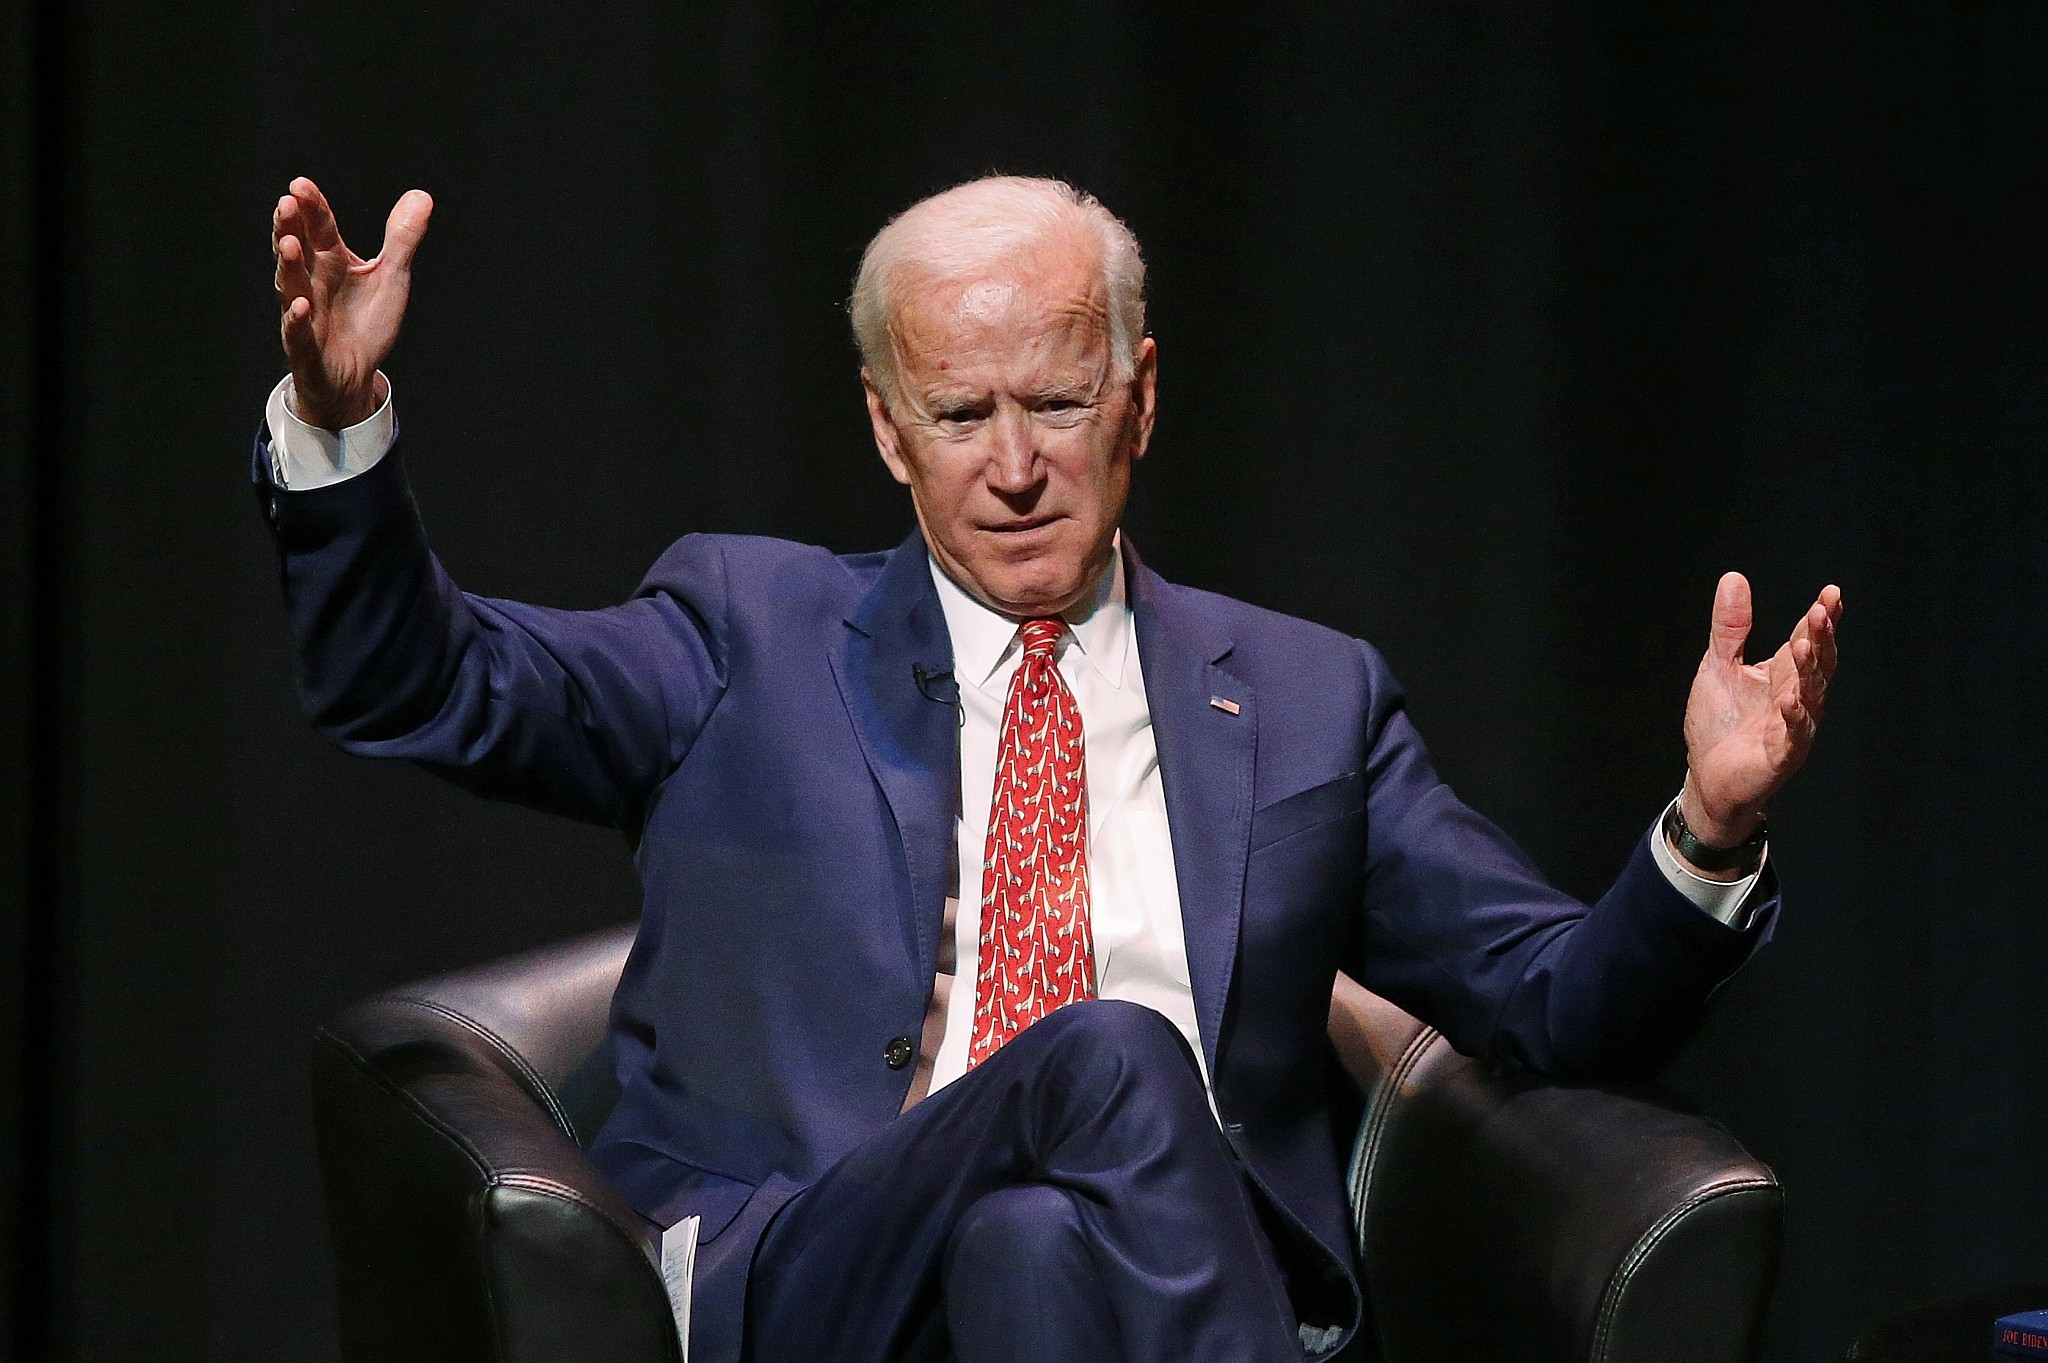 Biden nearing decision on 2020 White House bid, says report